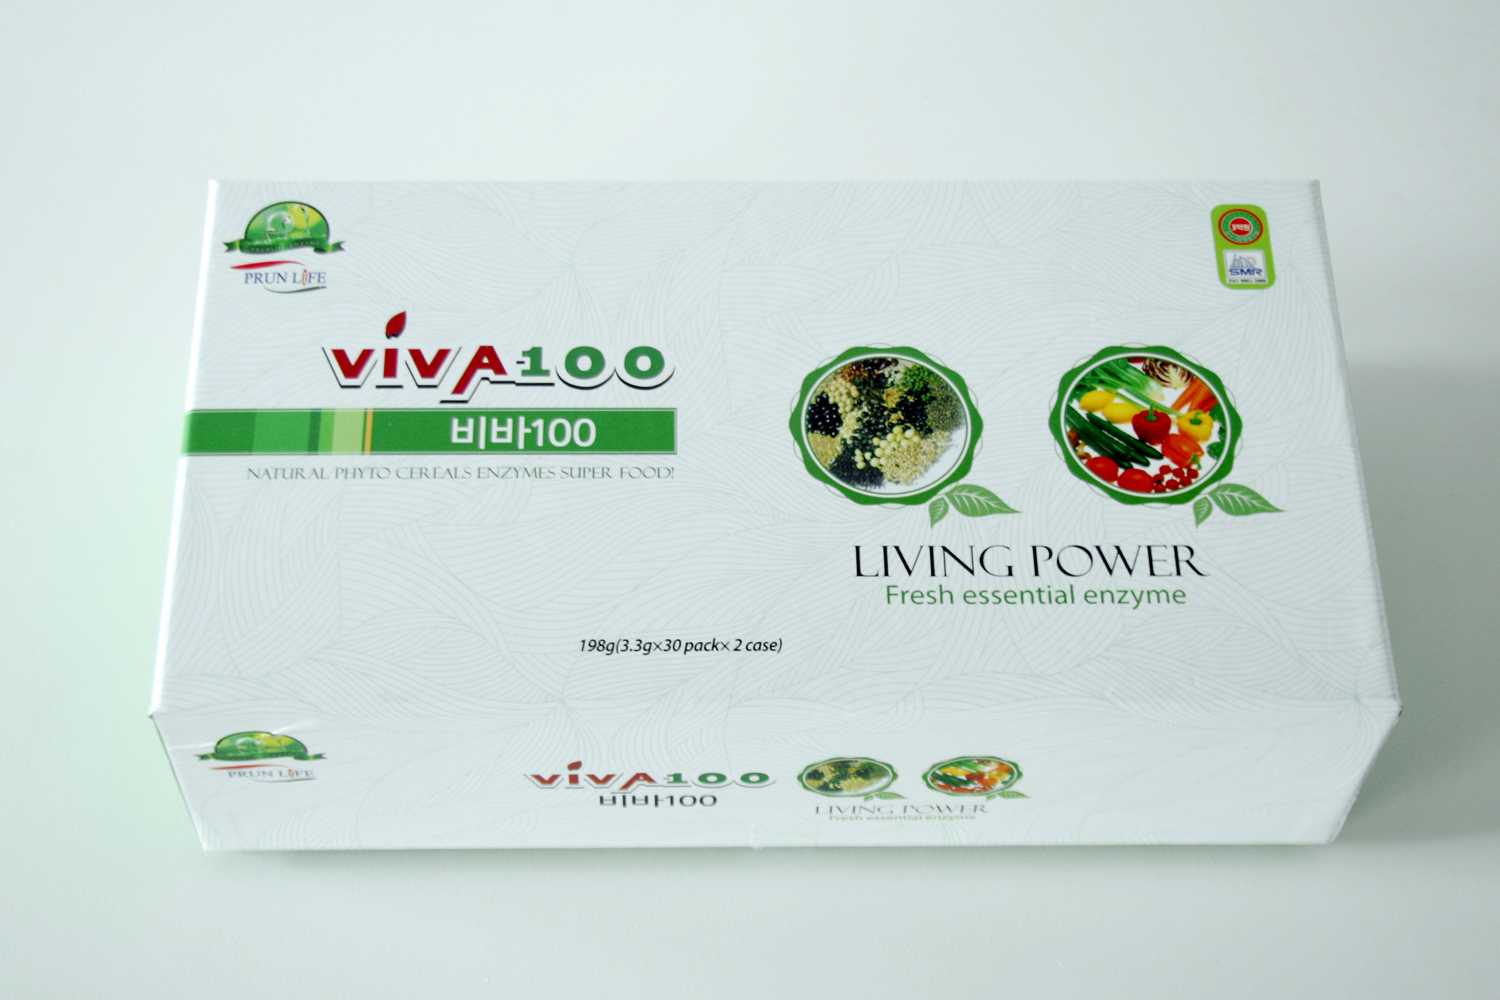 VIVA-100 NATURAL PHYTO CEREALS ENZYME SUPER FOOD